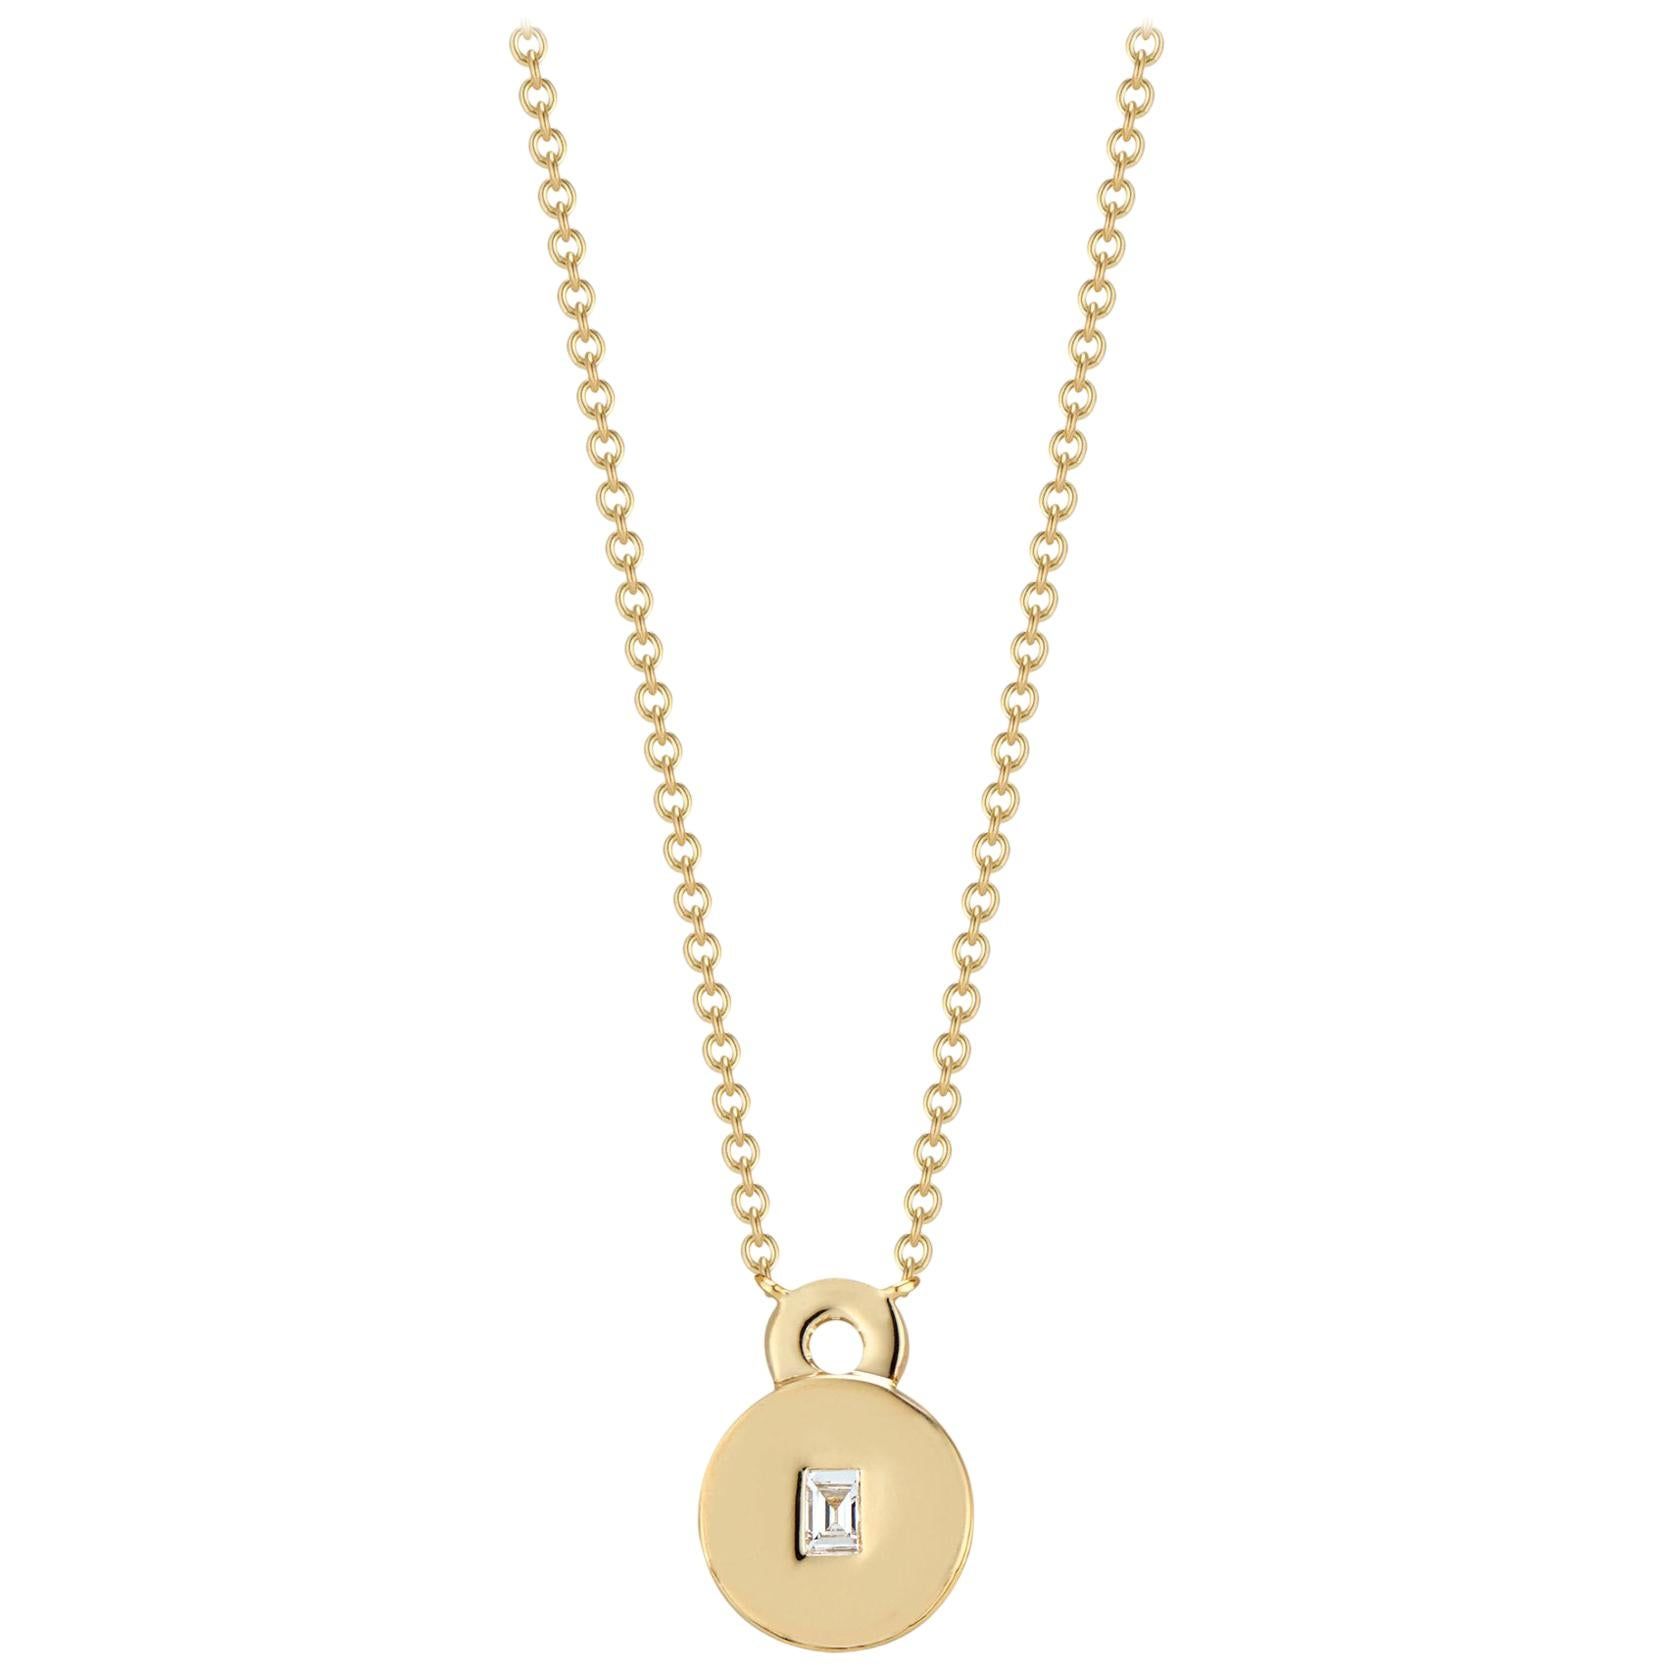 Love Lock Necklace with Baguette Diamond Solitaire